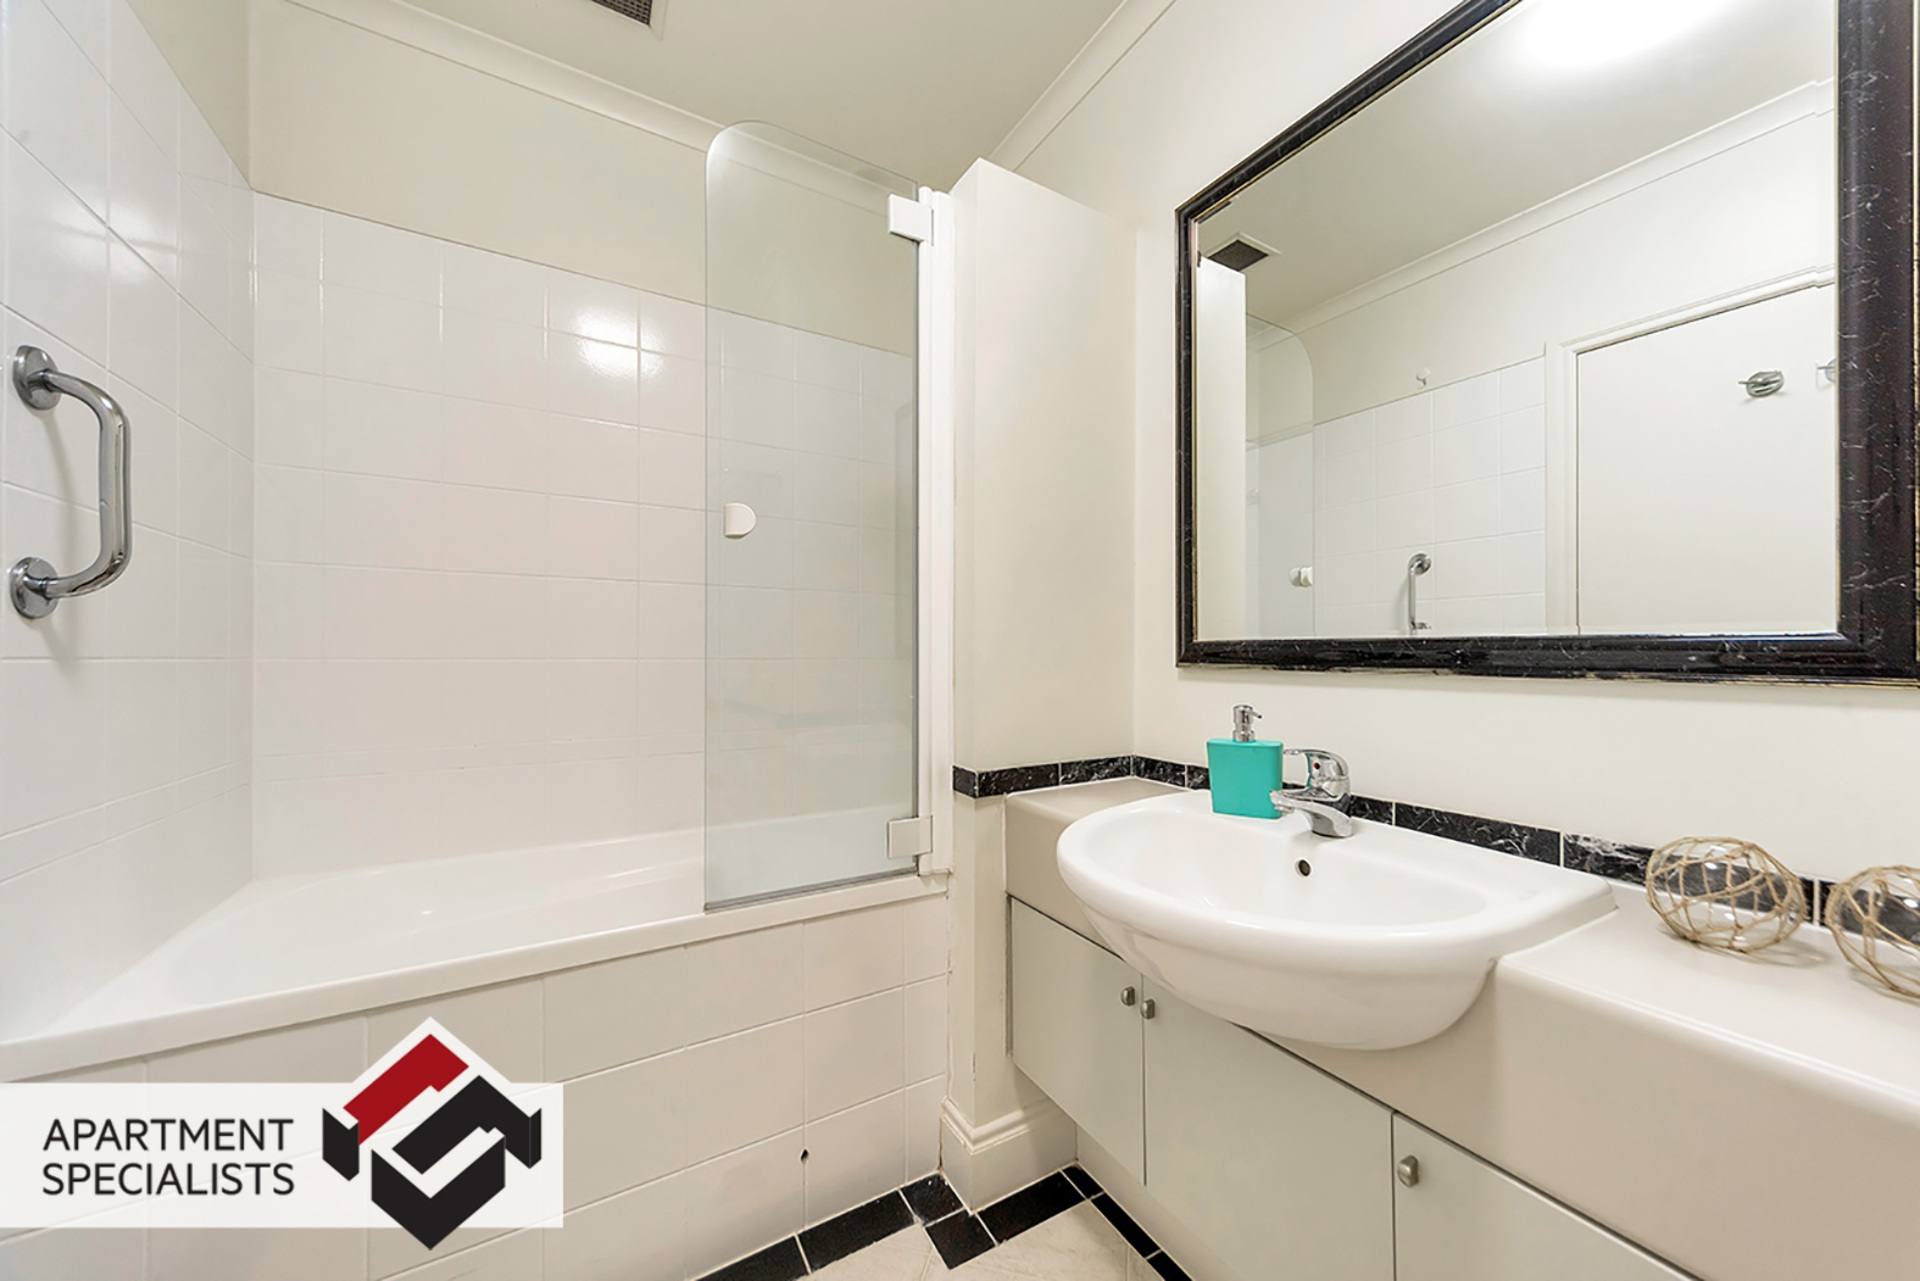 7 | 171 CBD, City Centre | Apartment Specialists